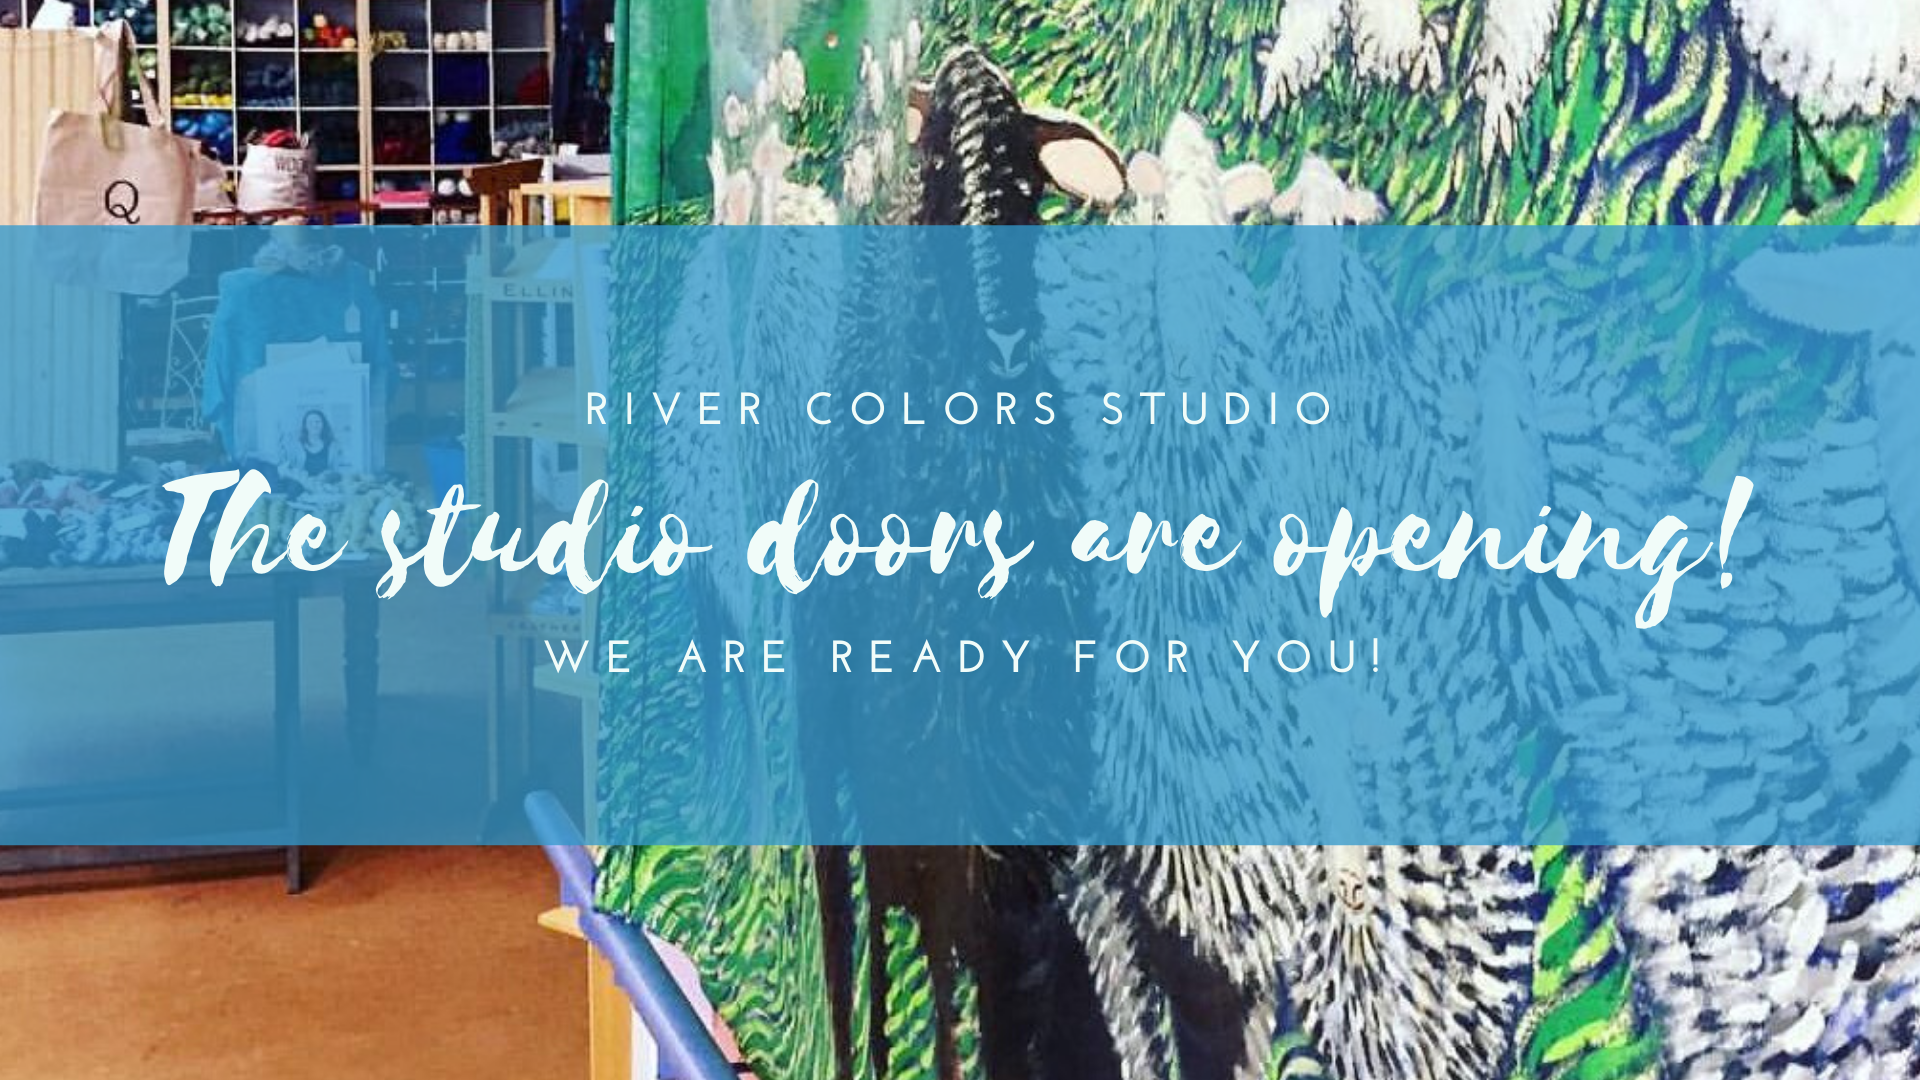 The studio doors are opening!